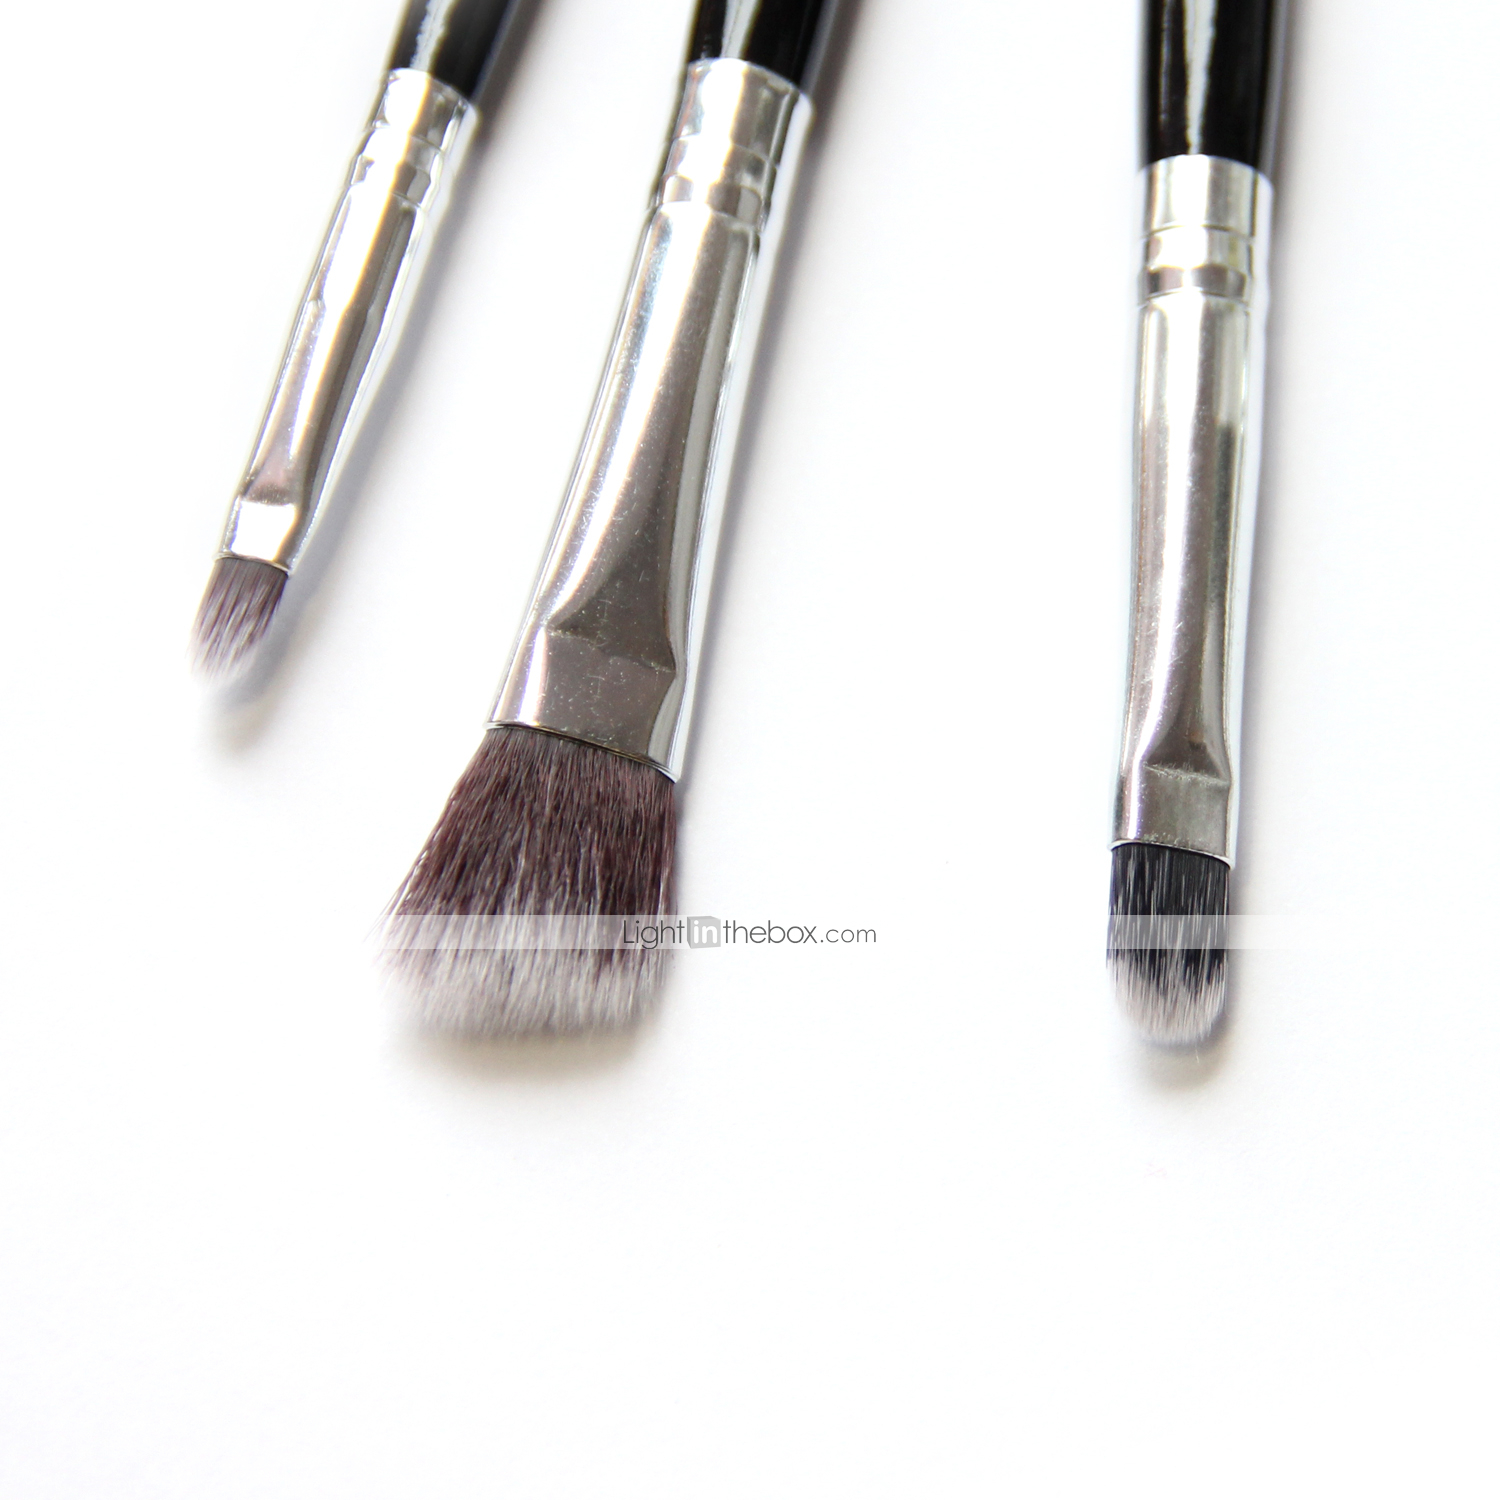 Set Brushes better Others brushes synthetic natural makeup Makeup #04121035 Nylon than